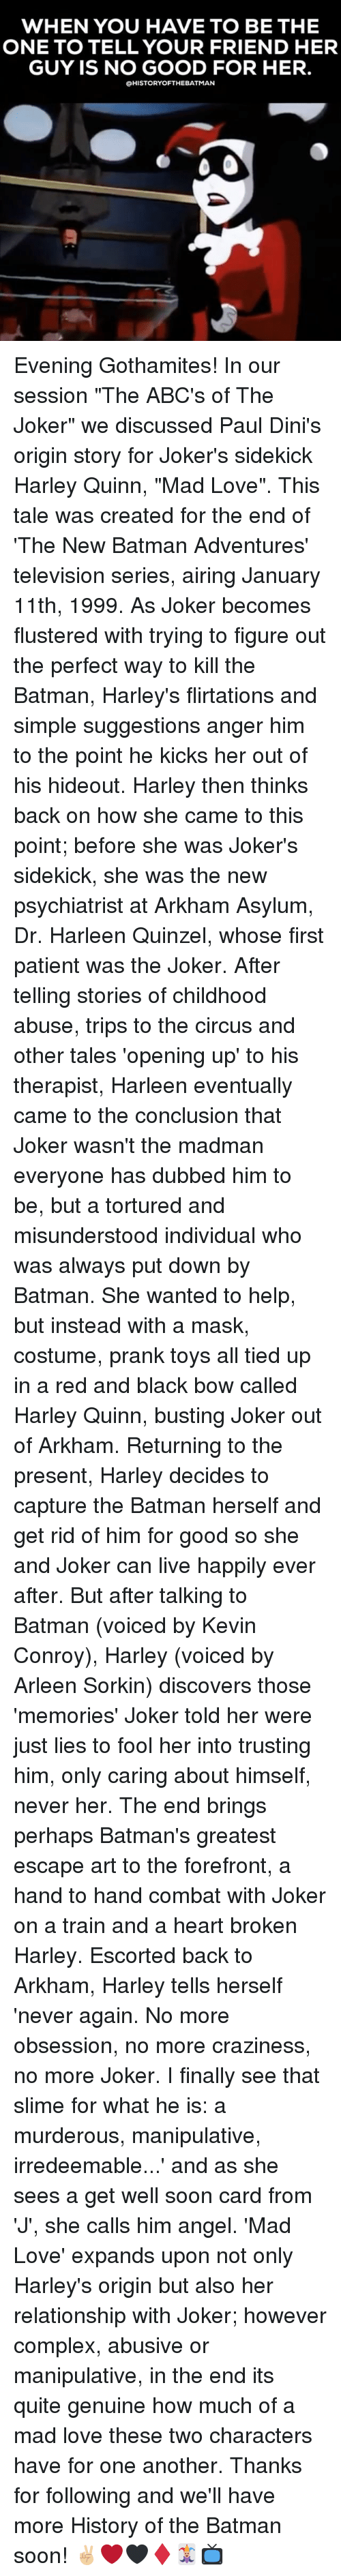 """Batman, Complex, and Joker: WHEN YOU HAVE TO BE THE  ONE TO TELL YOUR FRIEND HER  GUY IS NO GOOD FOR HER.  OHISTORYOFTHEBATMAN Evening Gothamites! In our session """"The ABC's of The Joker"""" we discussed Paul Dini's origin story for Joker's sidekick Harley Quinn, """"Mad Love"""". This tale was created for the end of 'The New Batman Adventures' television series, airing January 11th, 1999. As Joker becomes flustered with trying to figure out the perfect way to kill the Batman, Harley's flirtations and simple suggestions anger him to the point he kicks her out of his hideout. Harley then thinks back on how she came to this point; before she was Joker's sidekick, she was the new psychiatrist at Arkham Asylum, Dr. Harleen Quinzel, whose first patient was the Joker. After telling stories of childhood abuse, trips to the circus and other tales 'opening up' to his therapist, Harleen eventually came to the conclusion that Joker wasn't the madman everyone has dubbed him to be, but a tortured and misunderstood individual who was always put down by Batman. She wanted to help, but instead with a mask, costume, prank toys all tied up in a red and black bow called Harley Quinn, busting Joker out of Arkham. Returning to the present, Harley decides to capture the Batman herself and get rid of him for good so she and Joker can live happily ever after. But after talking to Batman (voiced by Kevin Conroy), Harley (voiced by Arleen Sorkin) discovers those 'memories' Joker told her were just lies to fool her into trusting him, only caring about himself, never her. The end brings perhaps Batman's greatest escape art to the forefront, a hand to hand combat with Joker on a train and a heart broken Harley. Escorted back to Arkham, Harley tells herself 'never again. No more obsession, no more craziness, no more Joker. I finally see that slime for what he is: a murderous, manipulative, irredeemable...' and as she sees a get well soon card from 'J', she calls him angel. 'Mad Love' expands upon not only"""